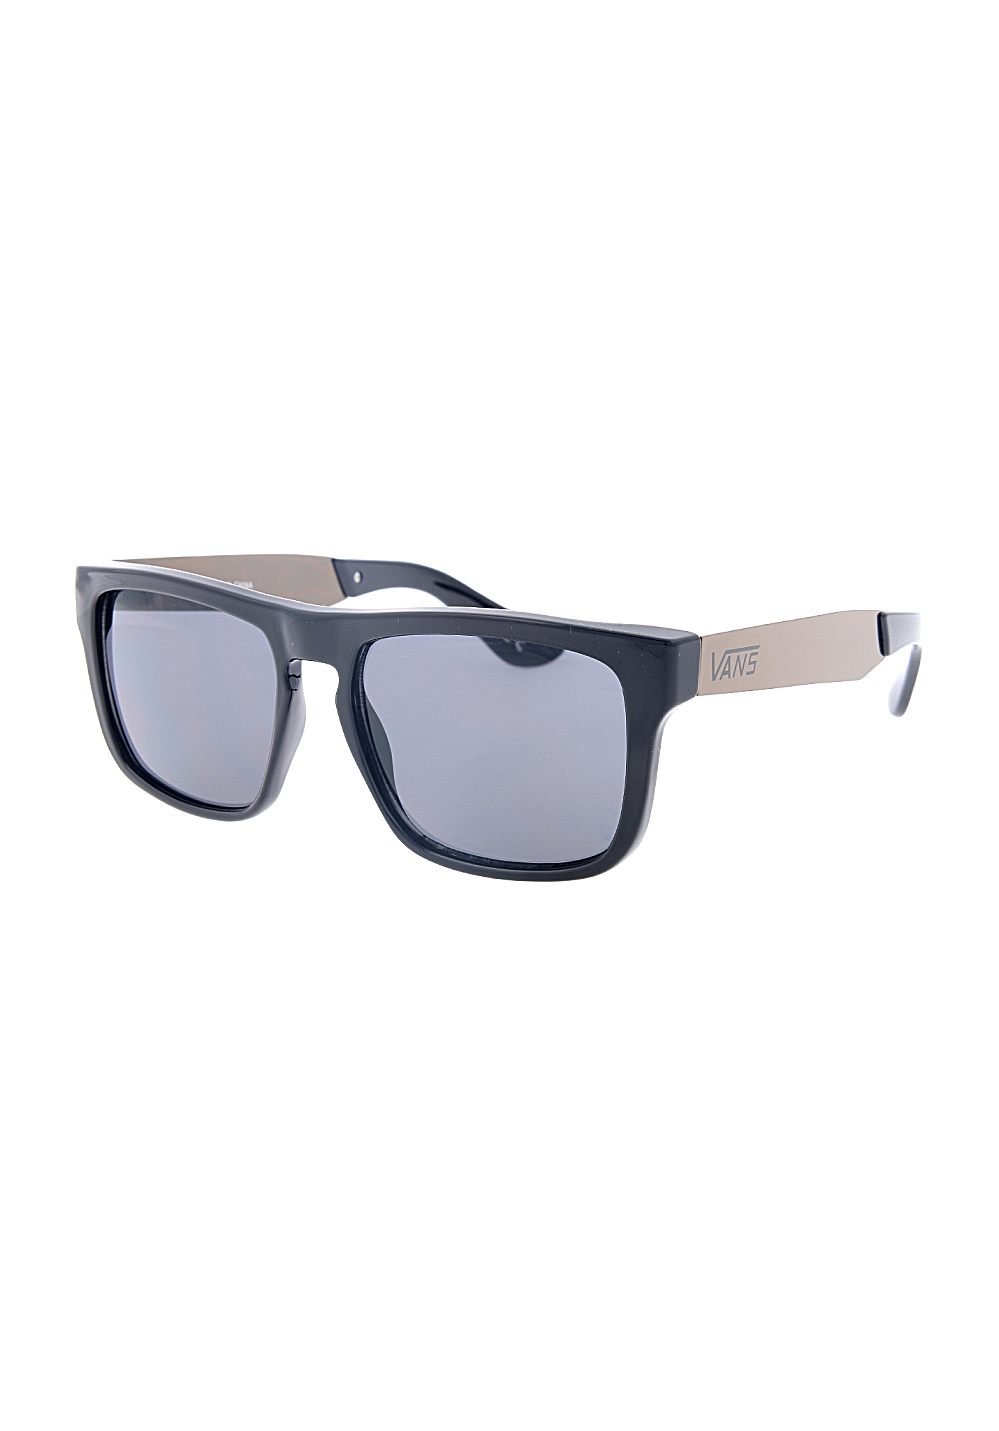 vans sunglasses mens Grey